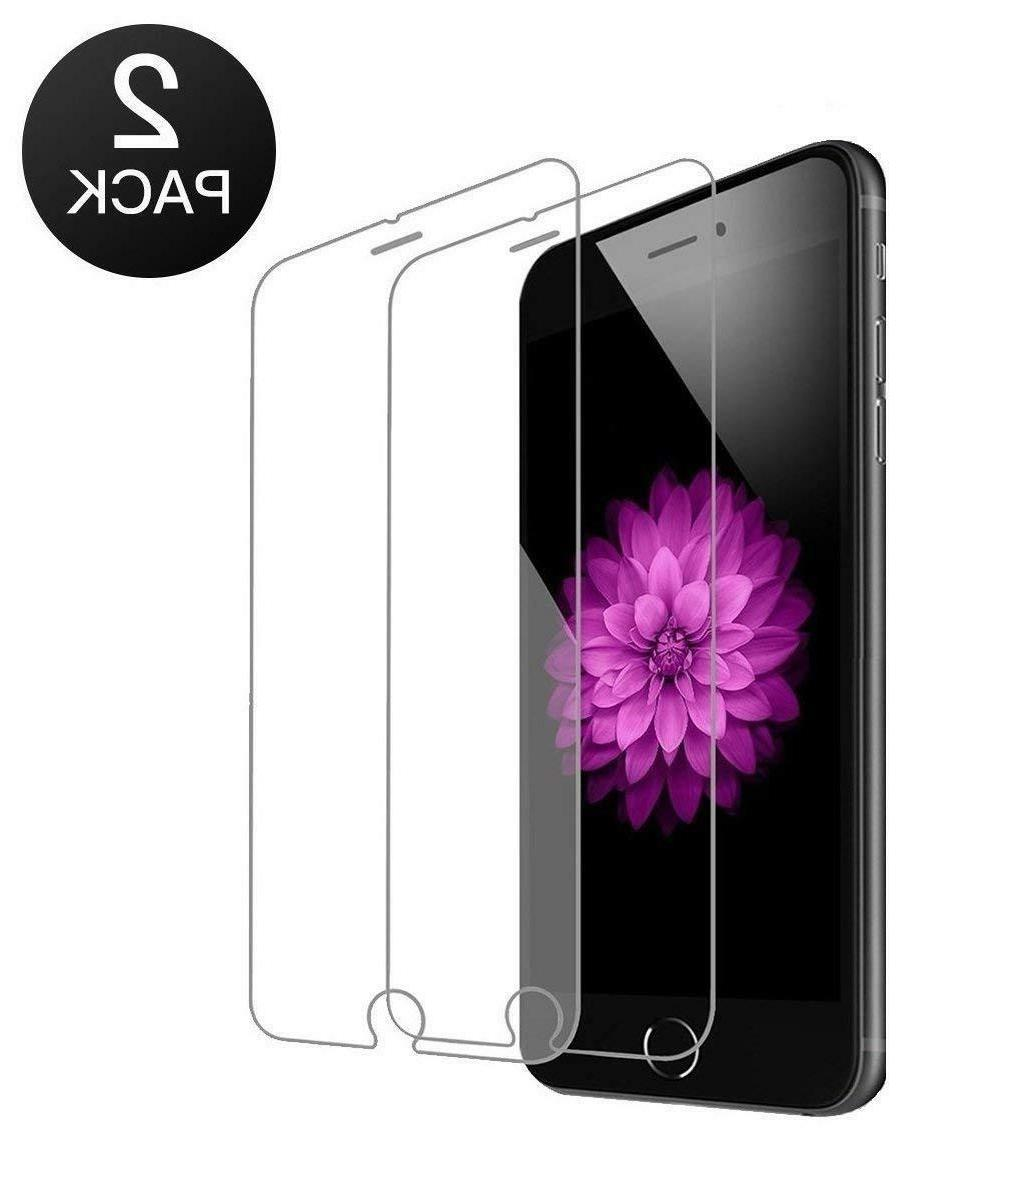 Case Protector iPhone Max Case 7 XS Clear